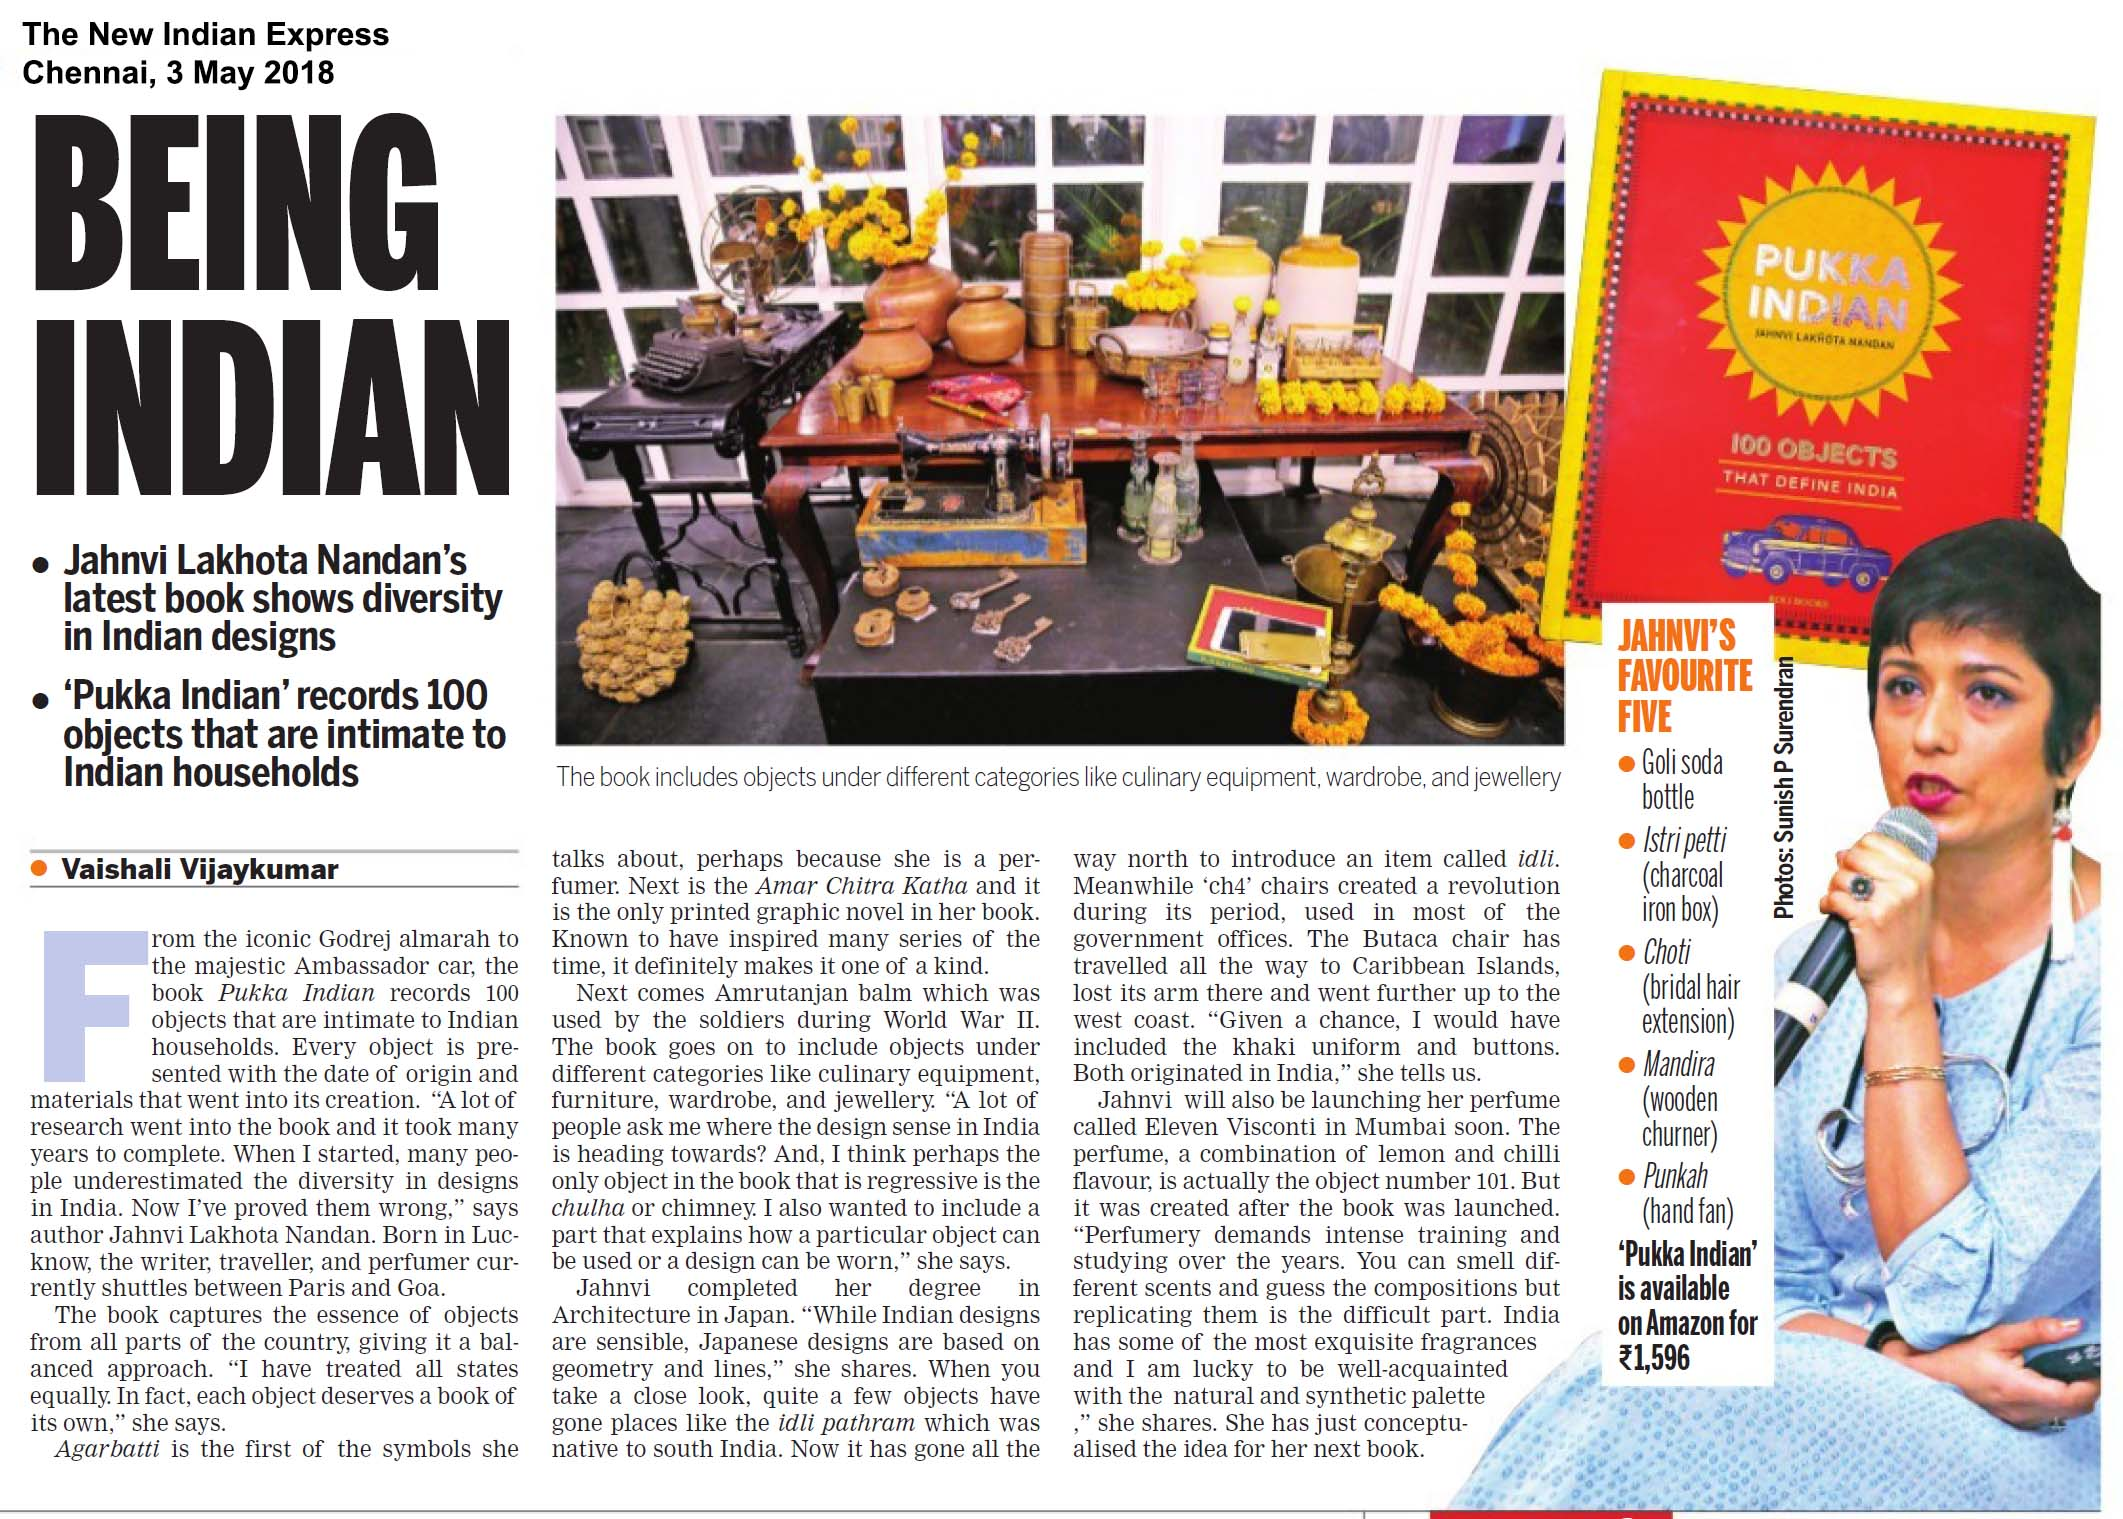 Pukka Indian<br><span>The New Indian Express, Chennai</span>